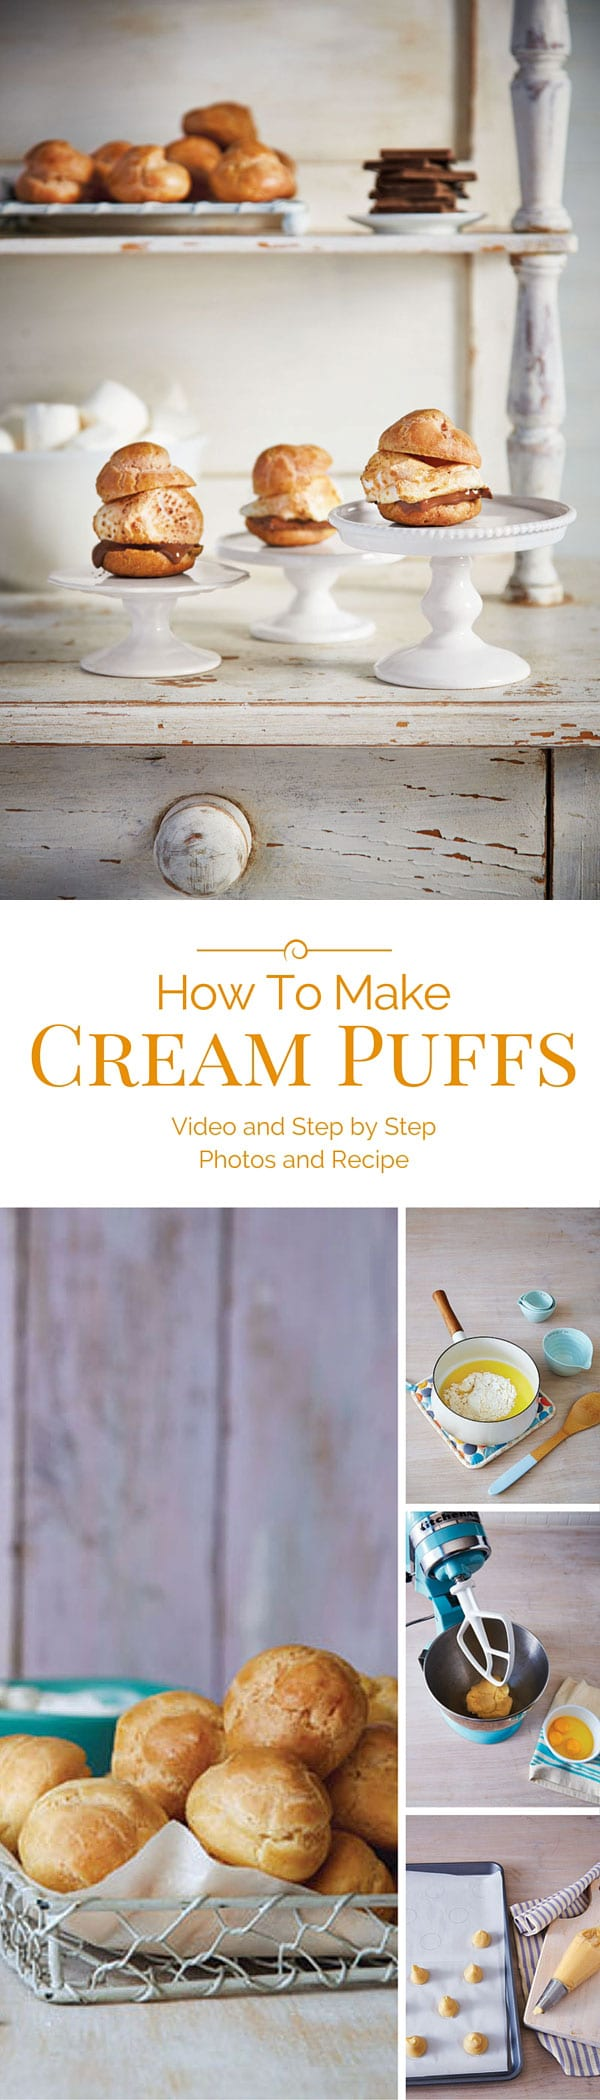 Watch my video and see how easy it is to make cream puffs, including these fun S'mores Cream Puffs.